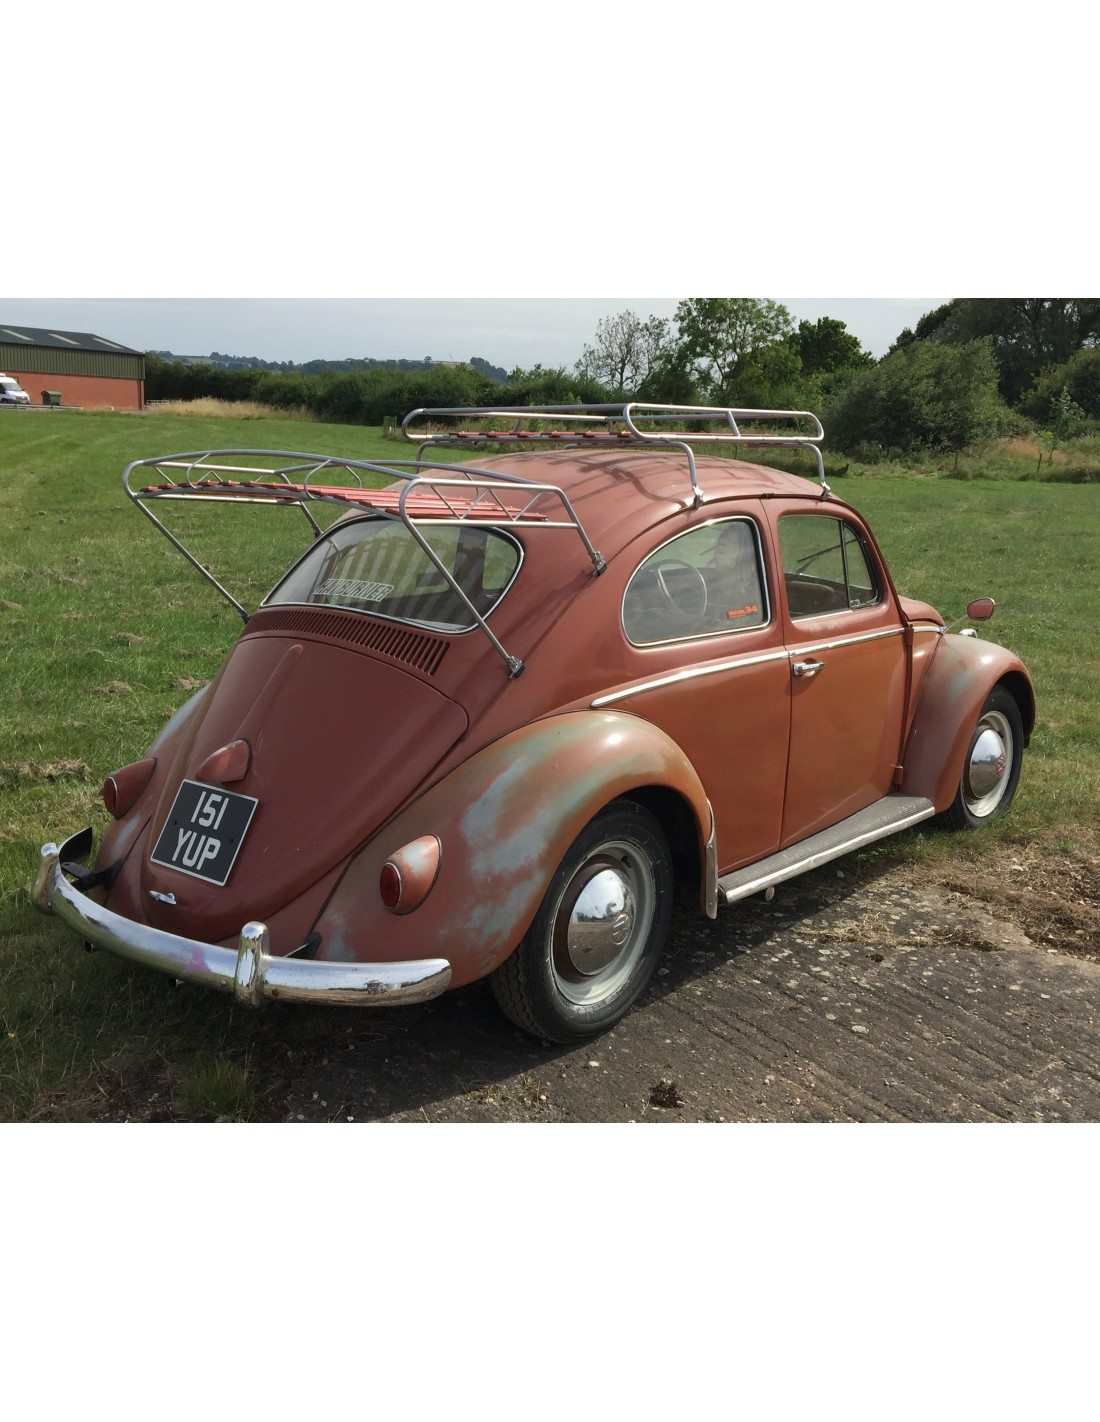 Classic Beetle Nla Vw Roof Rack Silver Powder Coating With